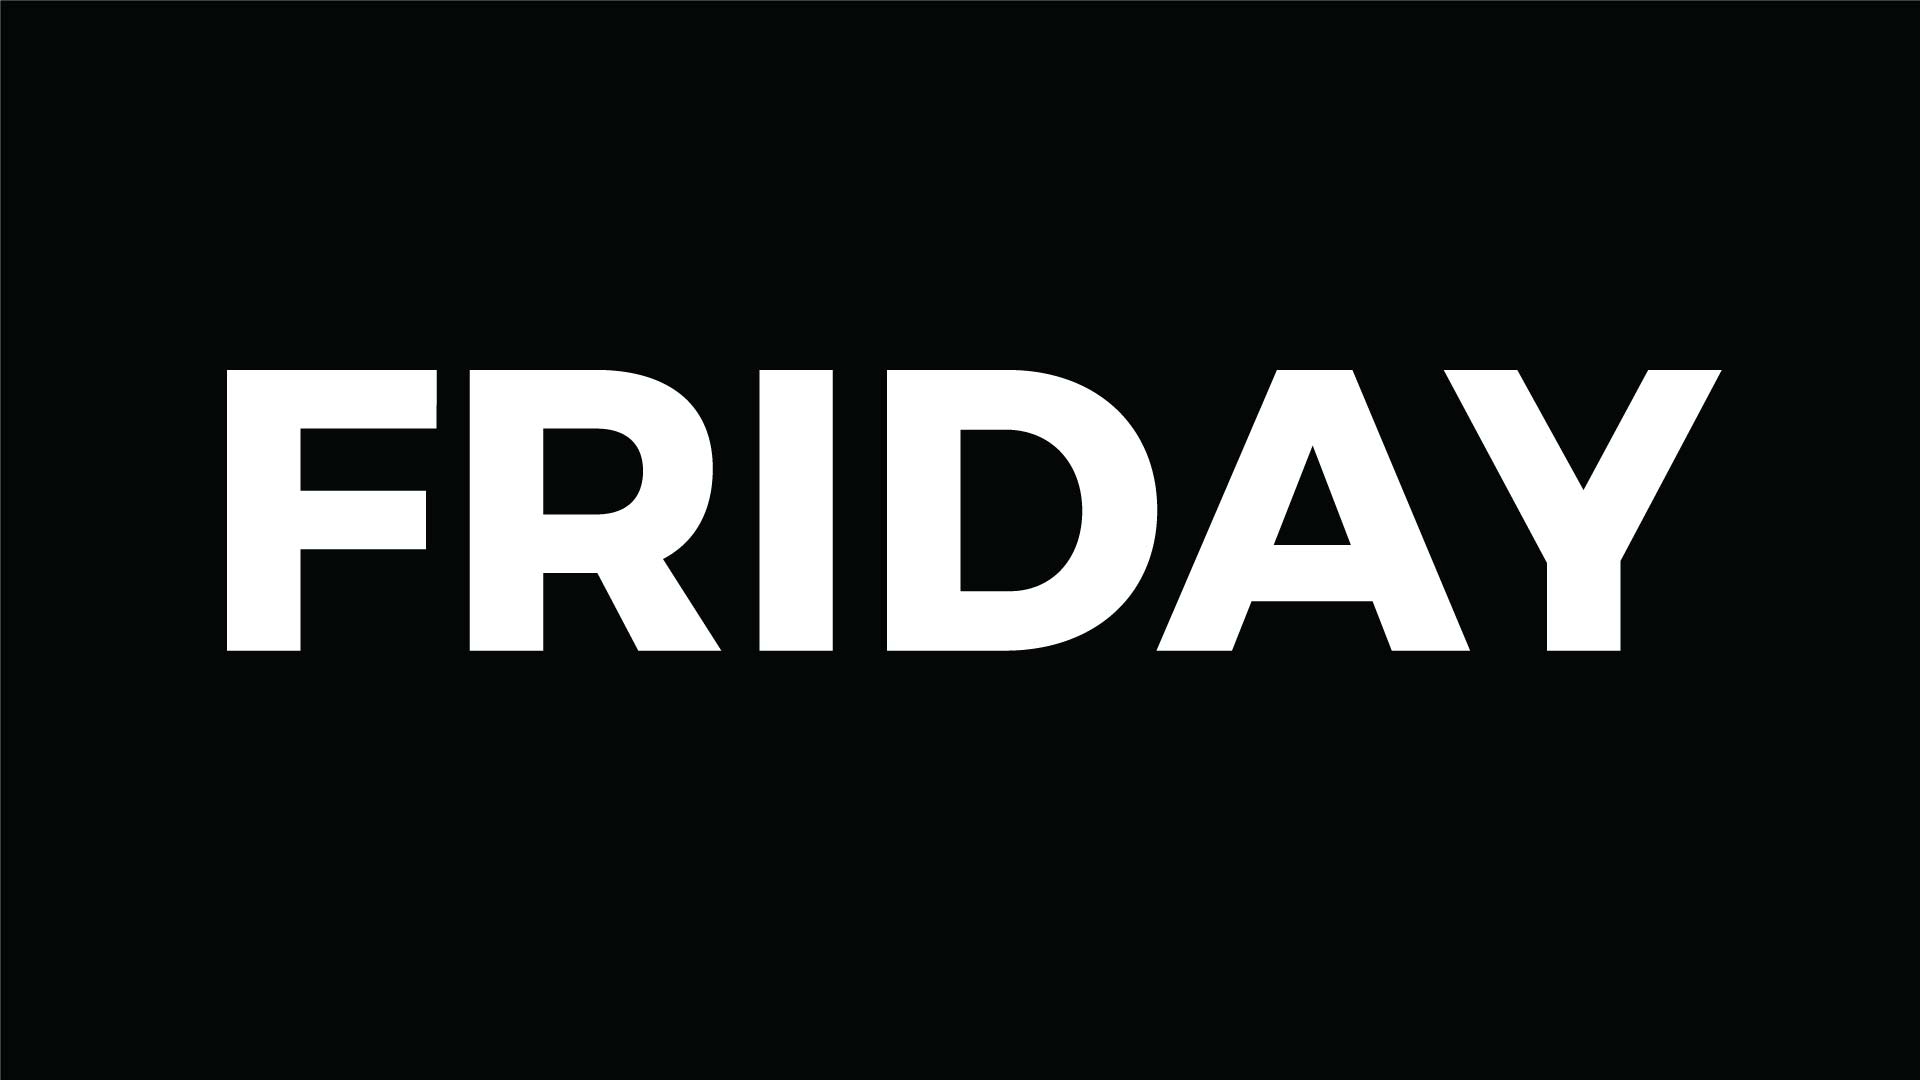 Songs About Friday